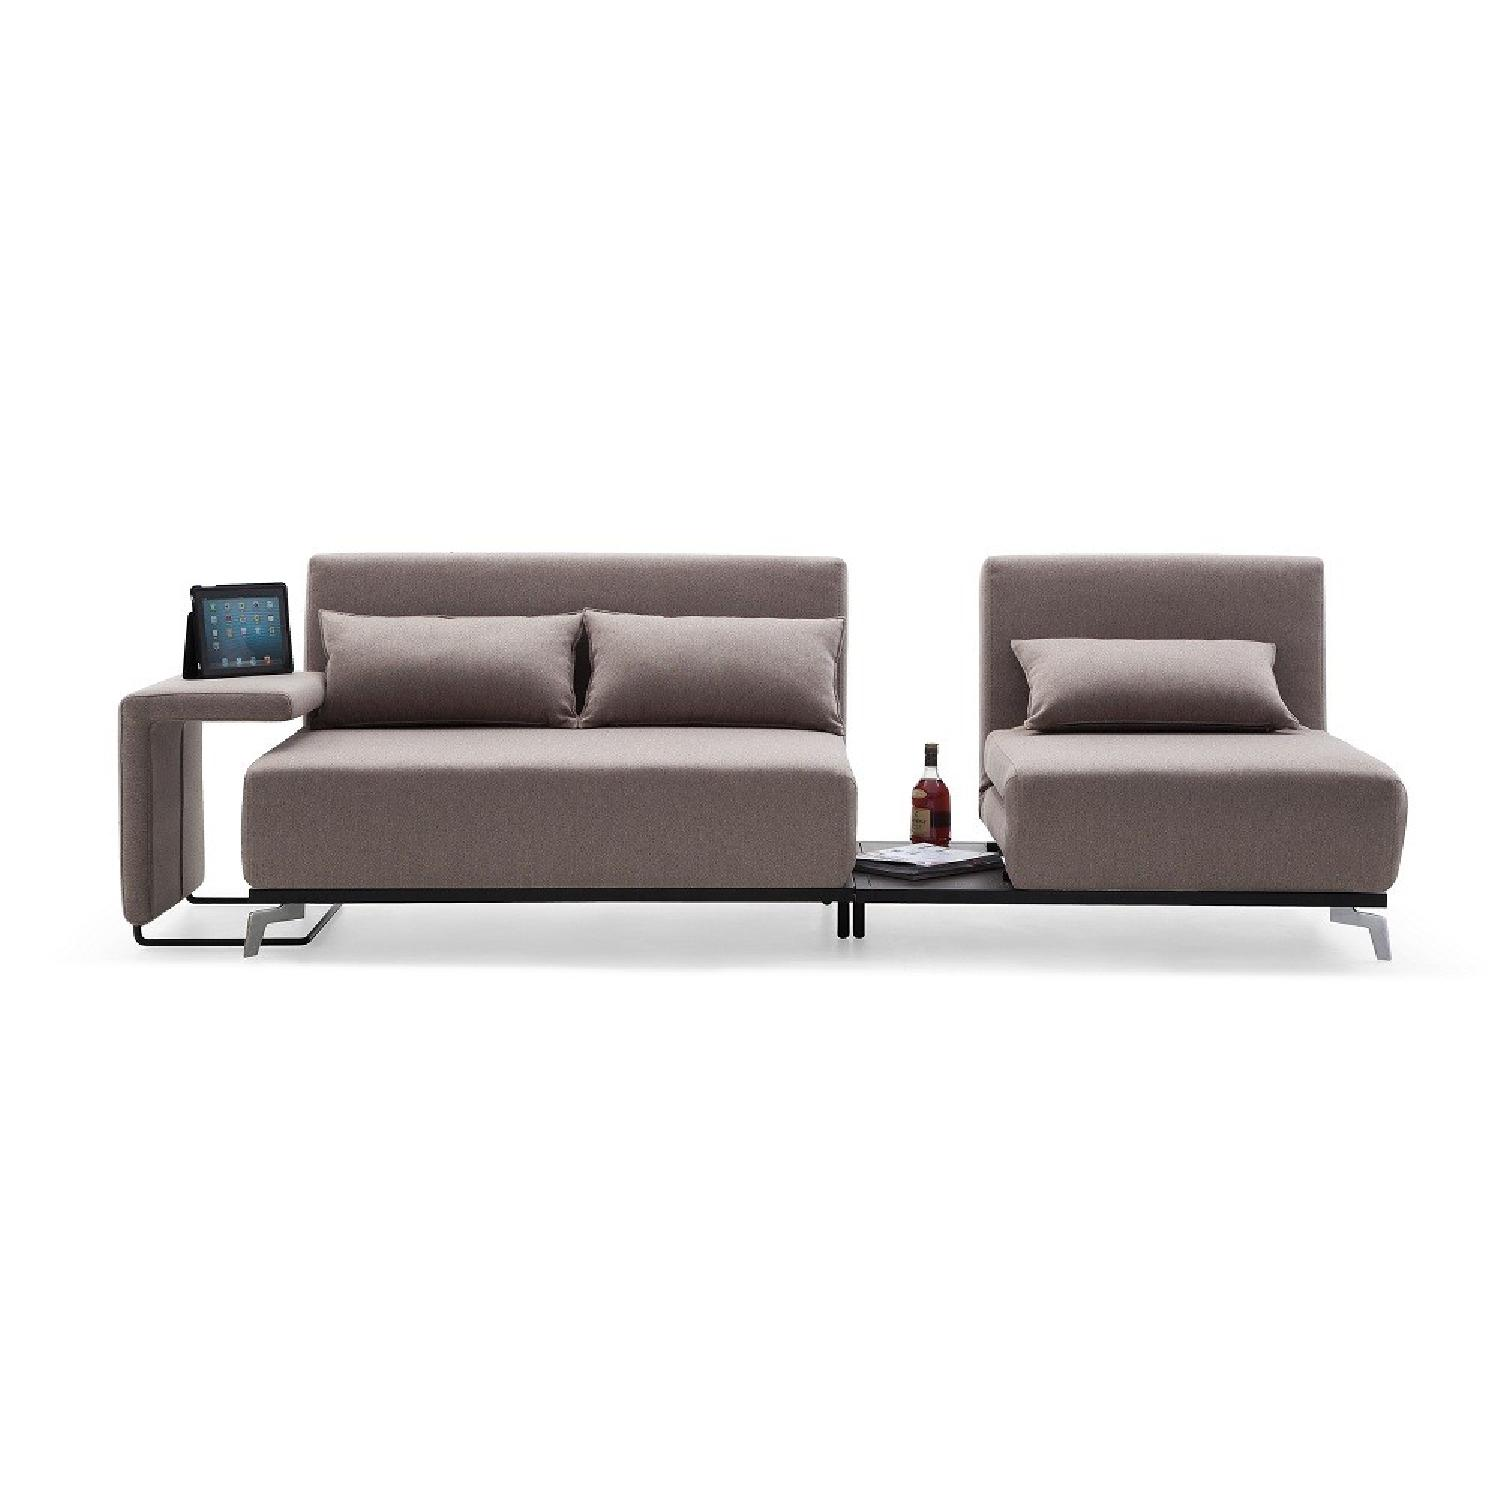 smart sofa designs what colour walls with brown leather the double seat bed aptdeco